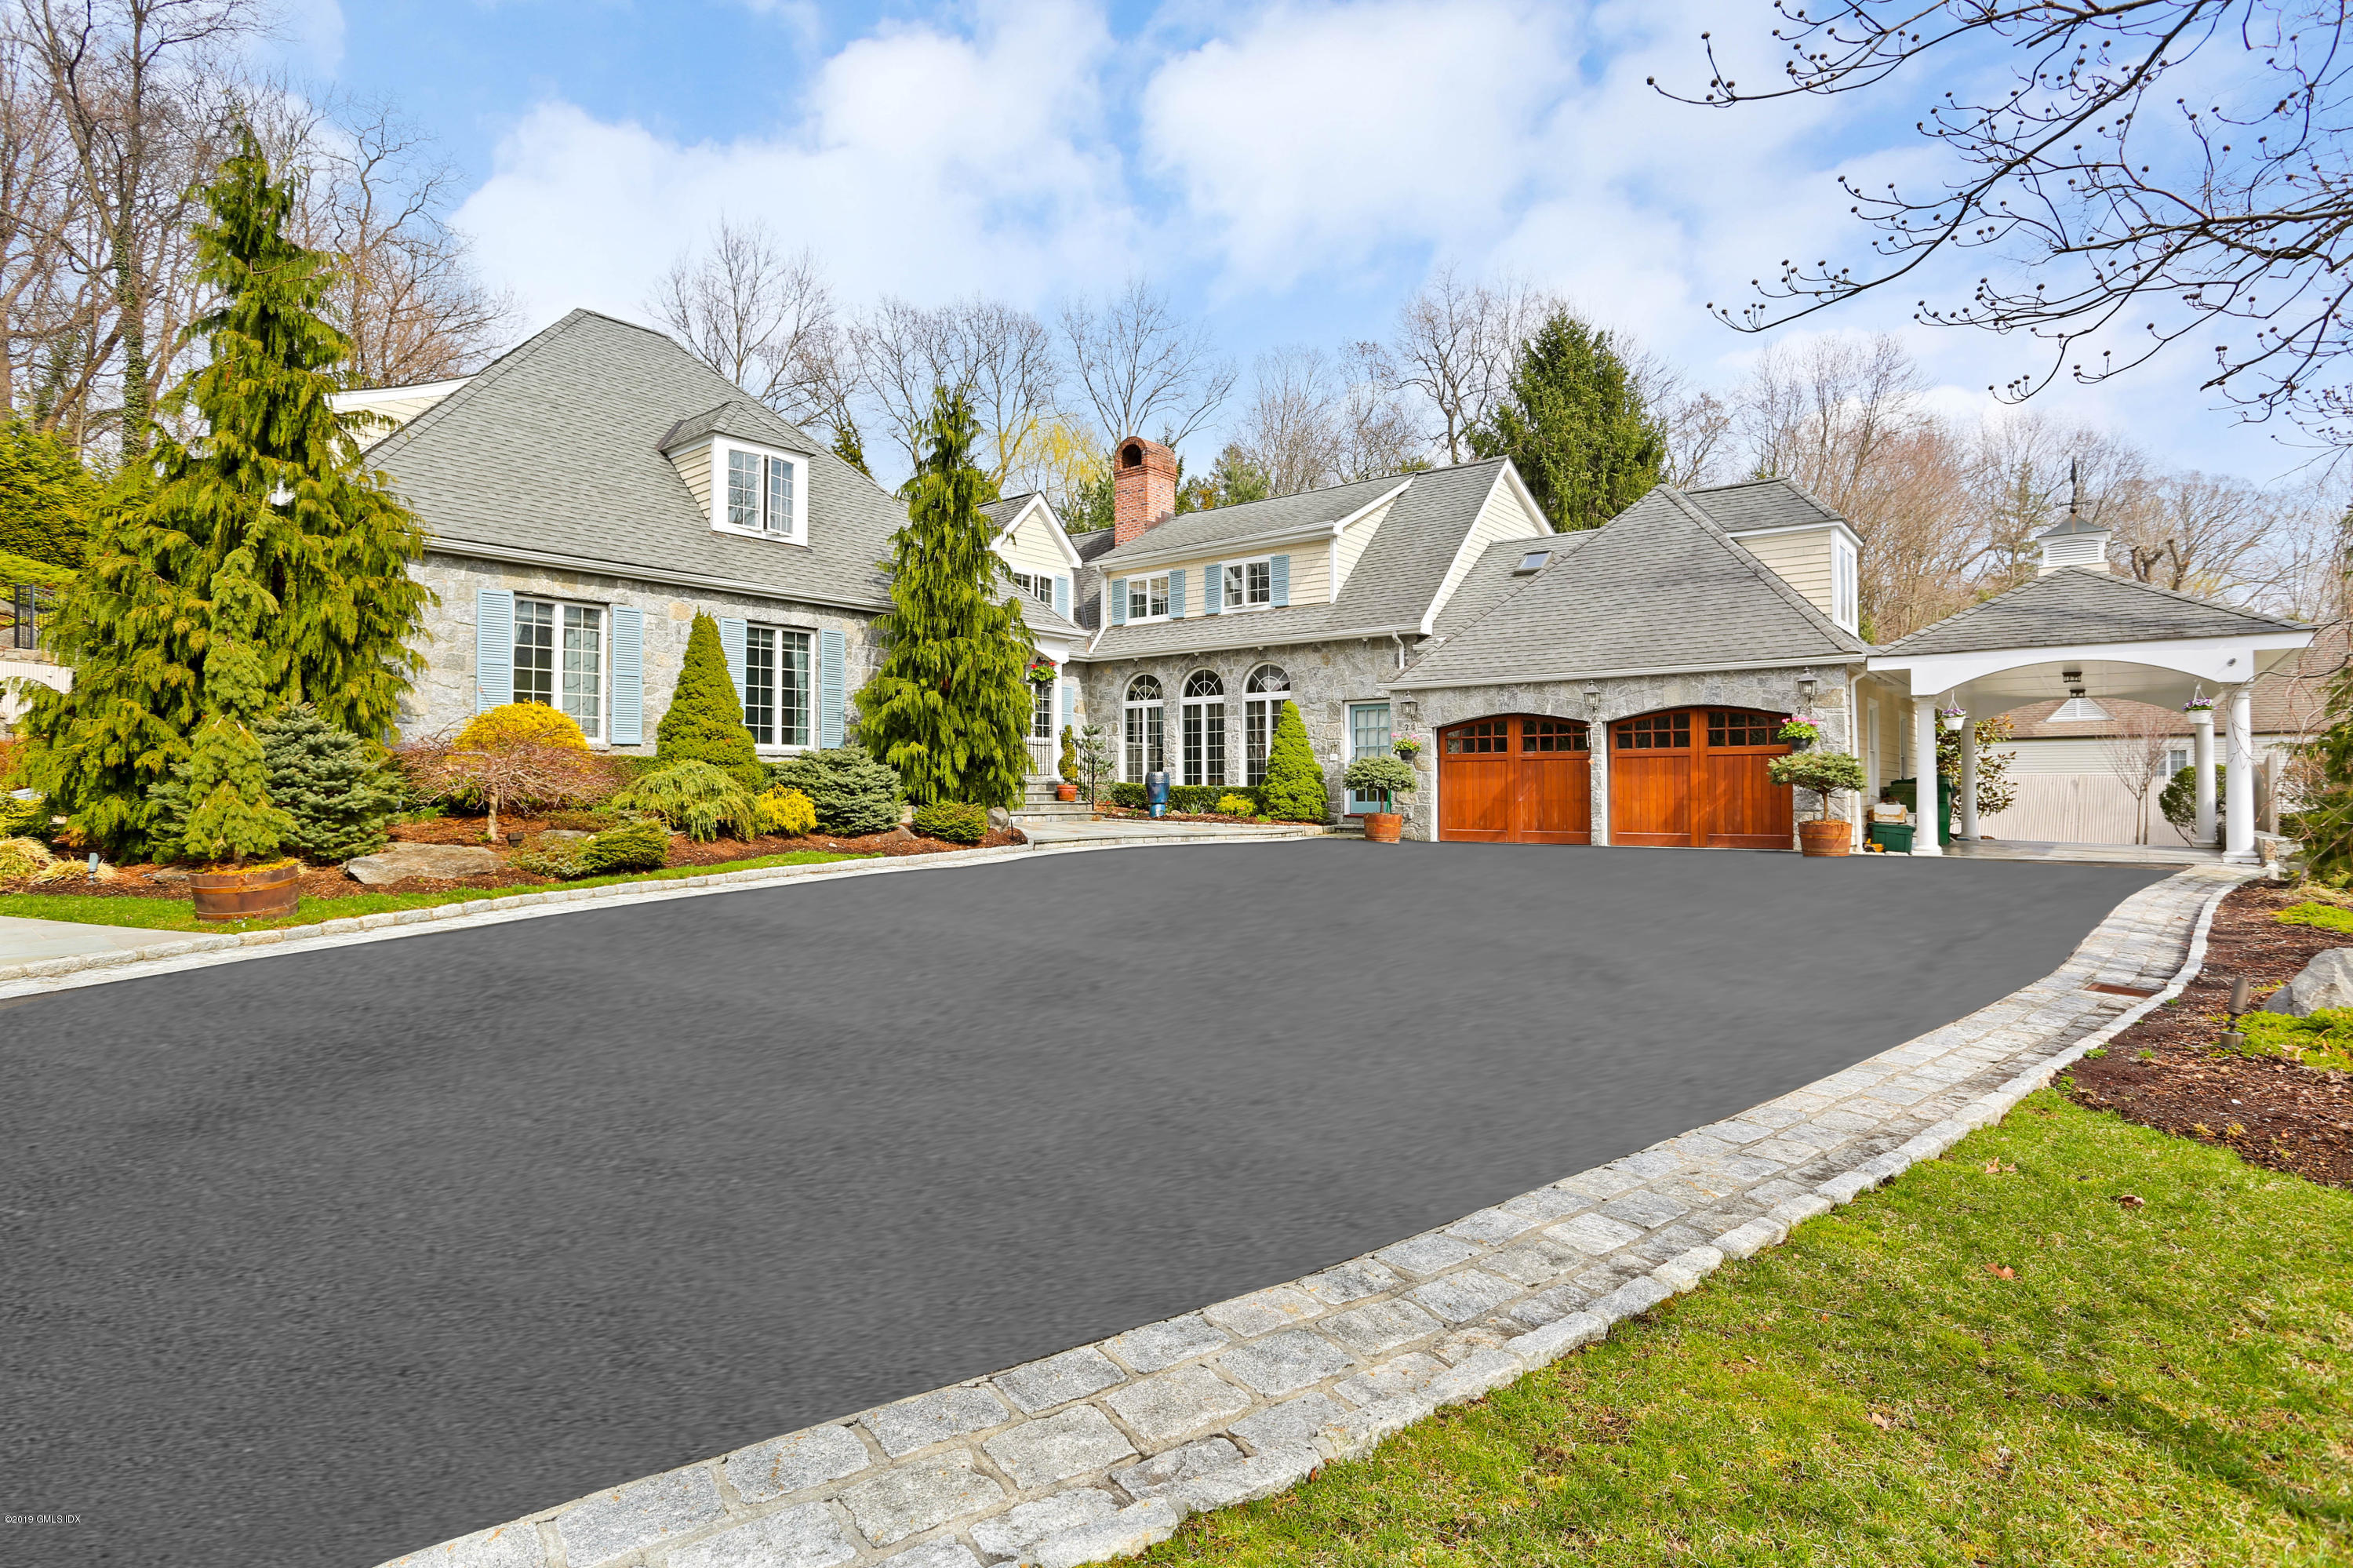 17 Cotswood Road,Greenwich,Connecticut 06830,6 Bedrooms Bedrooms,5 BathroomsBathrooms,Single family,Cotswood,106190